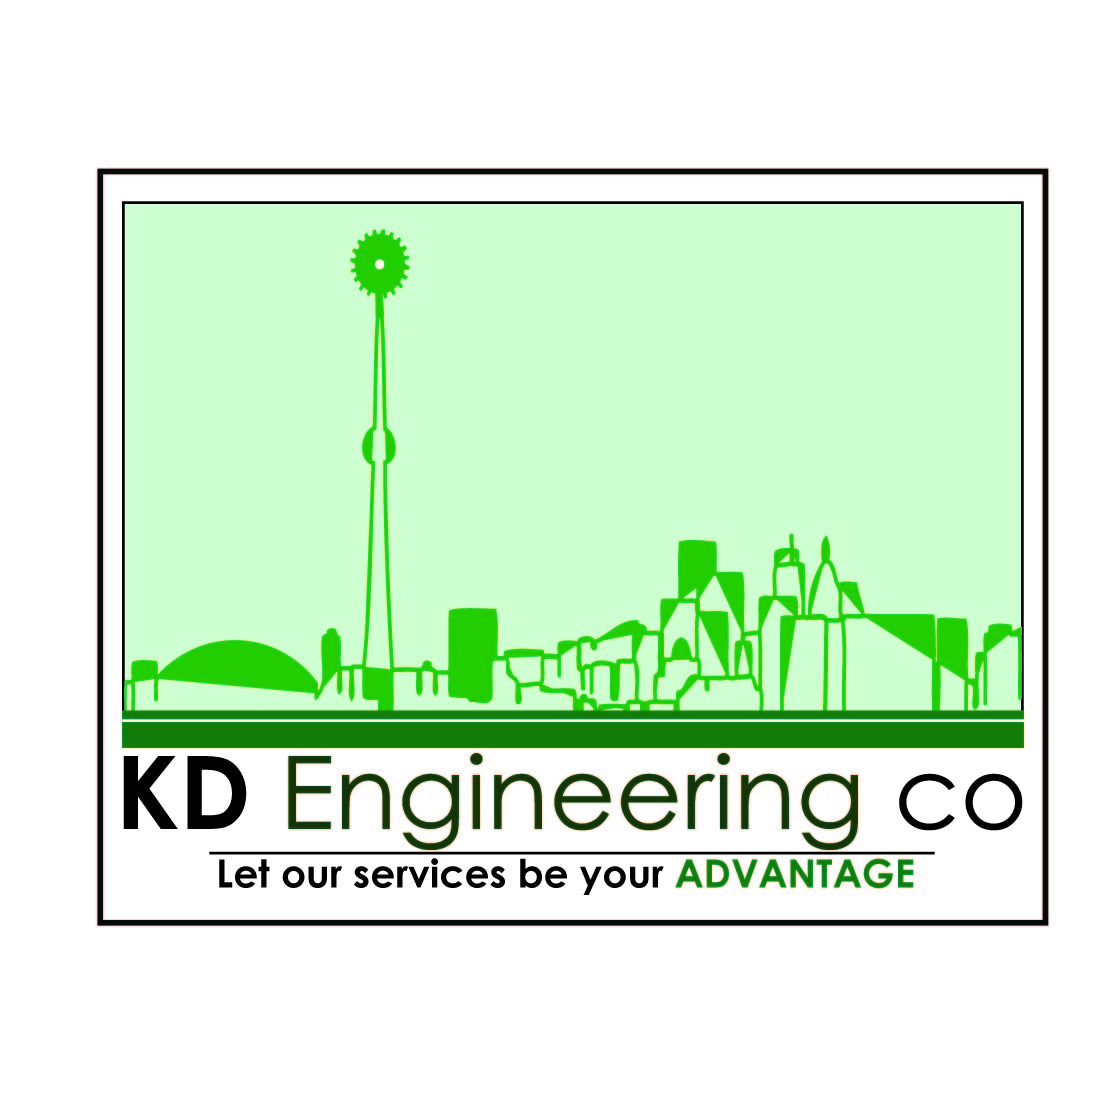 Logo Design by Saunter - Entry No. 59 in the Logo Design Contest KD Engineering Co..